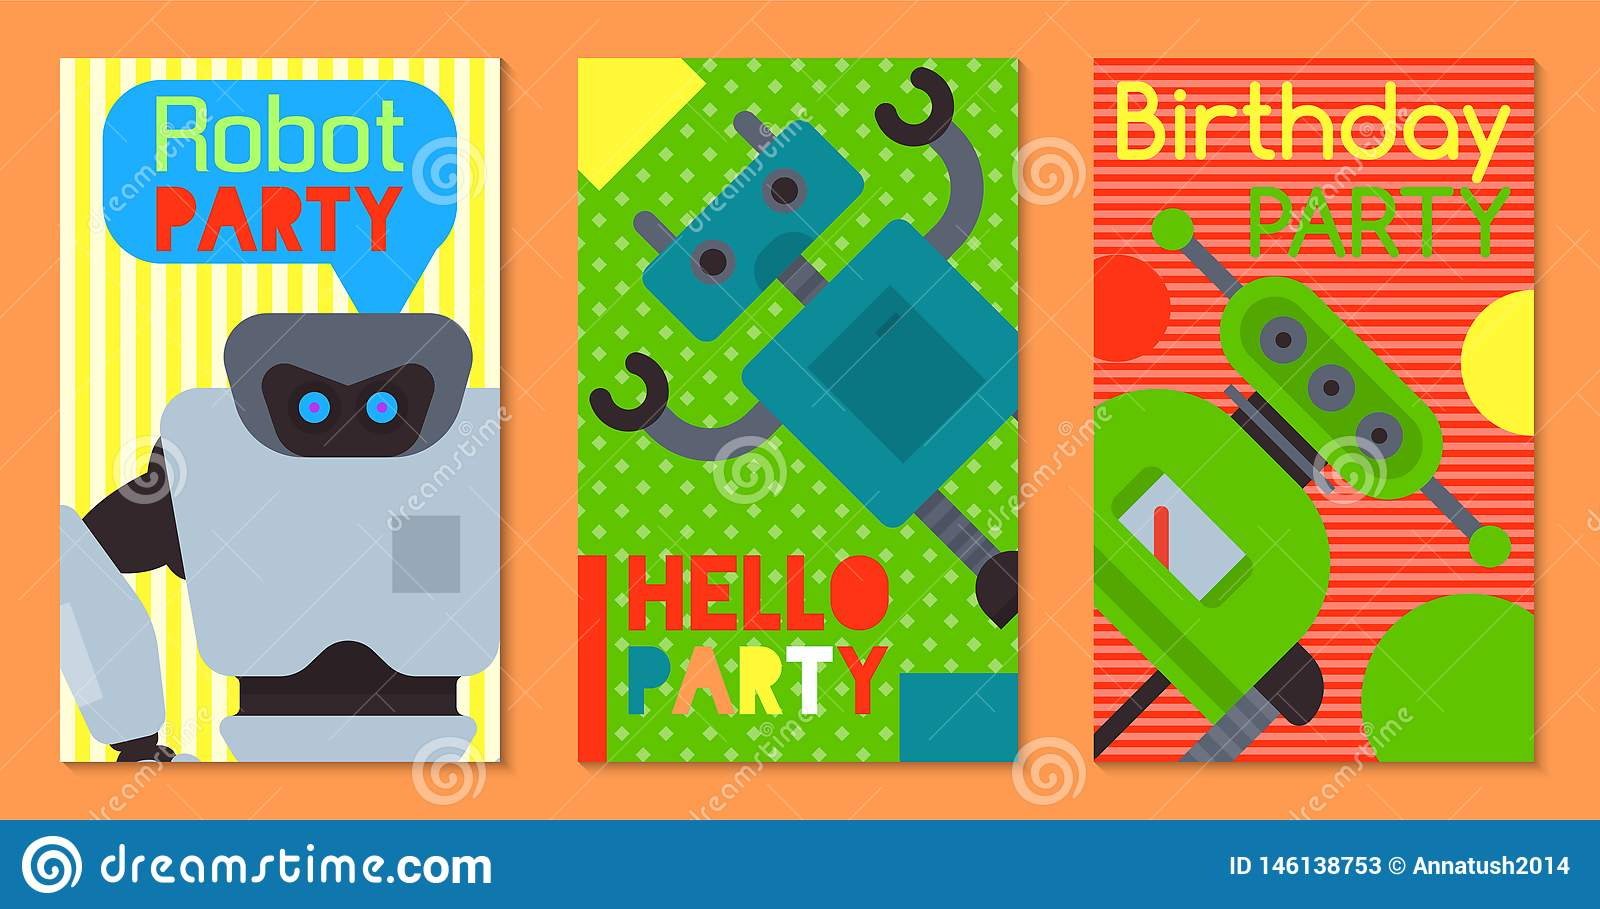 Robot waving, robotic dog friend design for kid party set of banners, cards vector illustration. Birthday party welcome